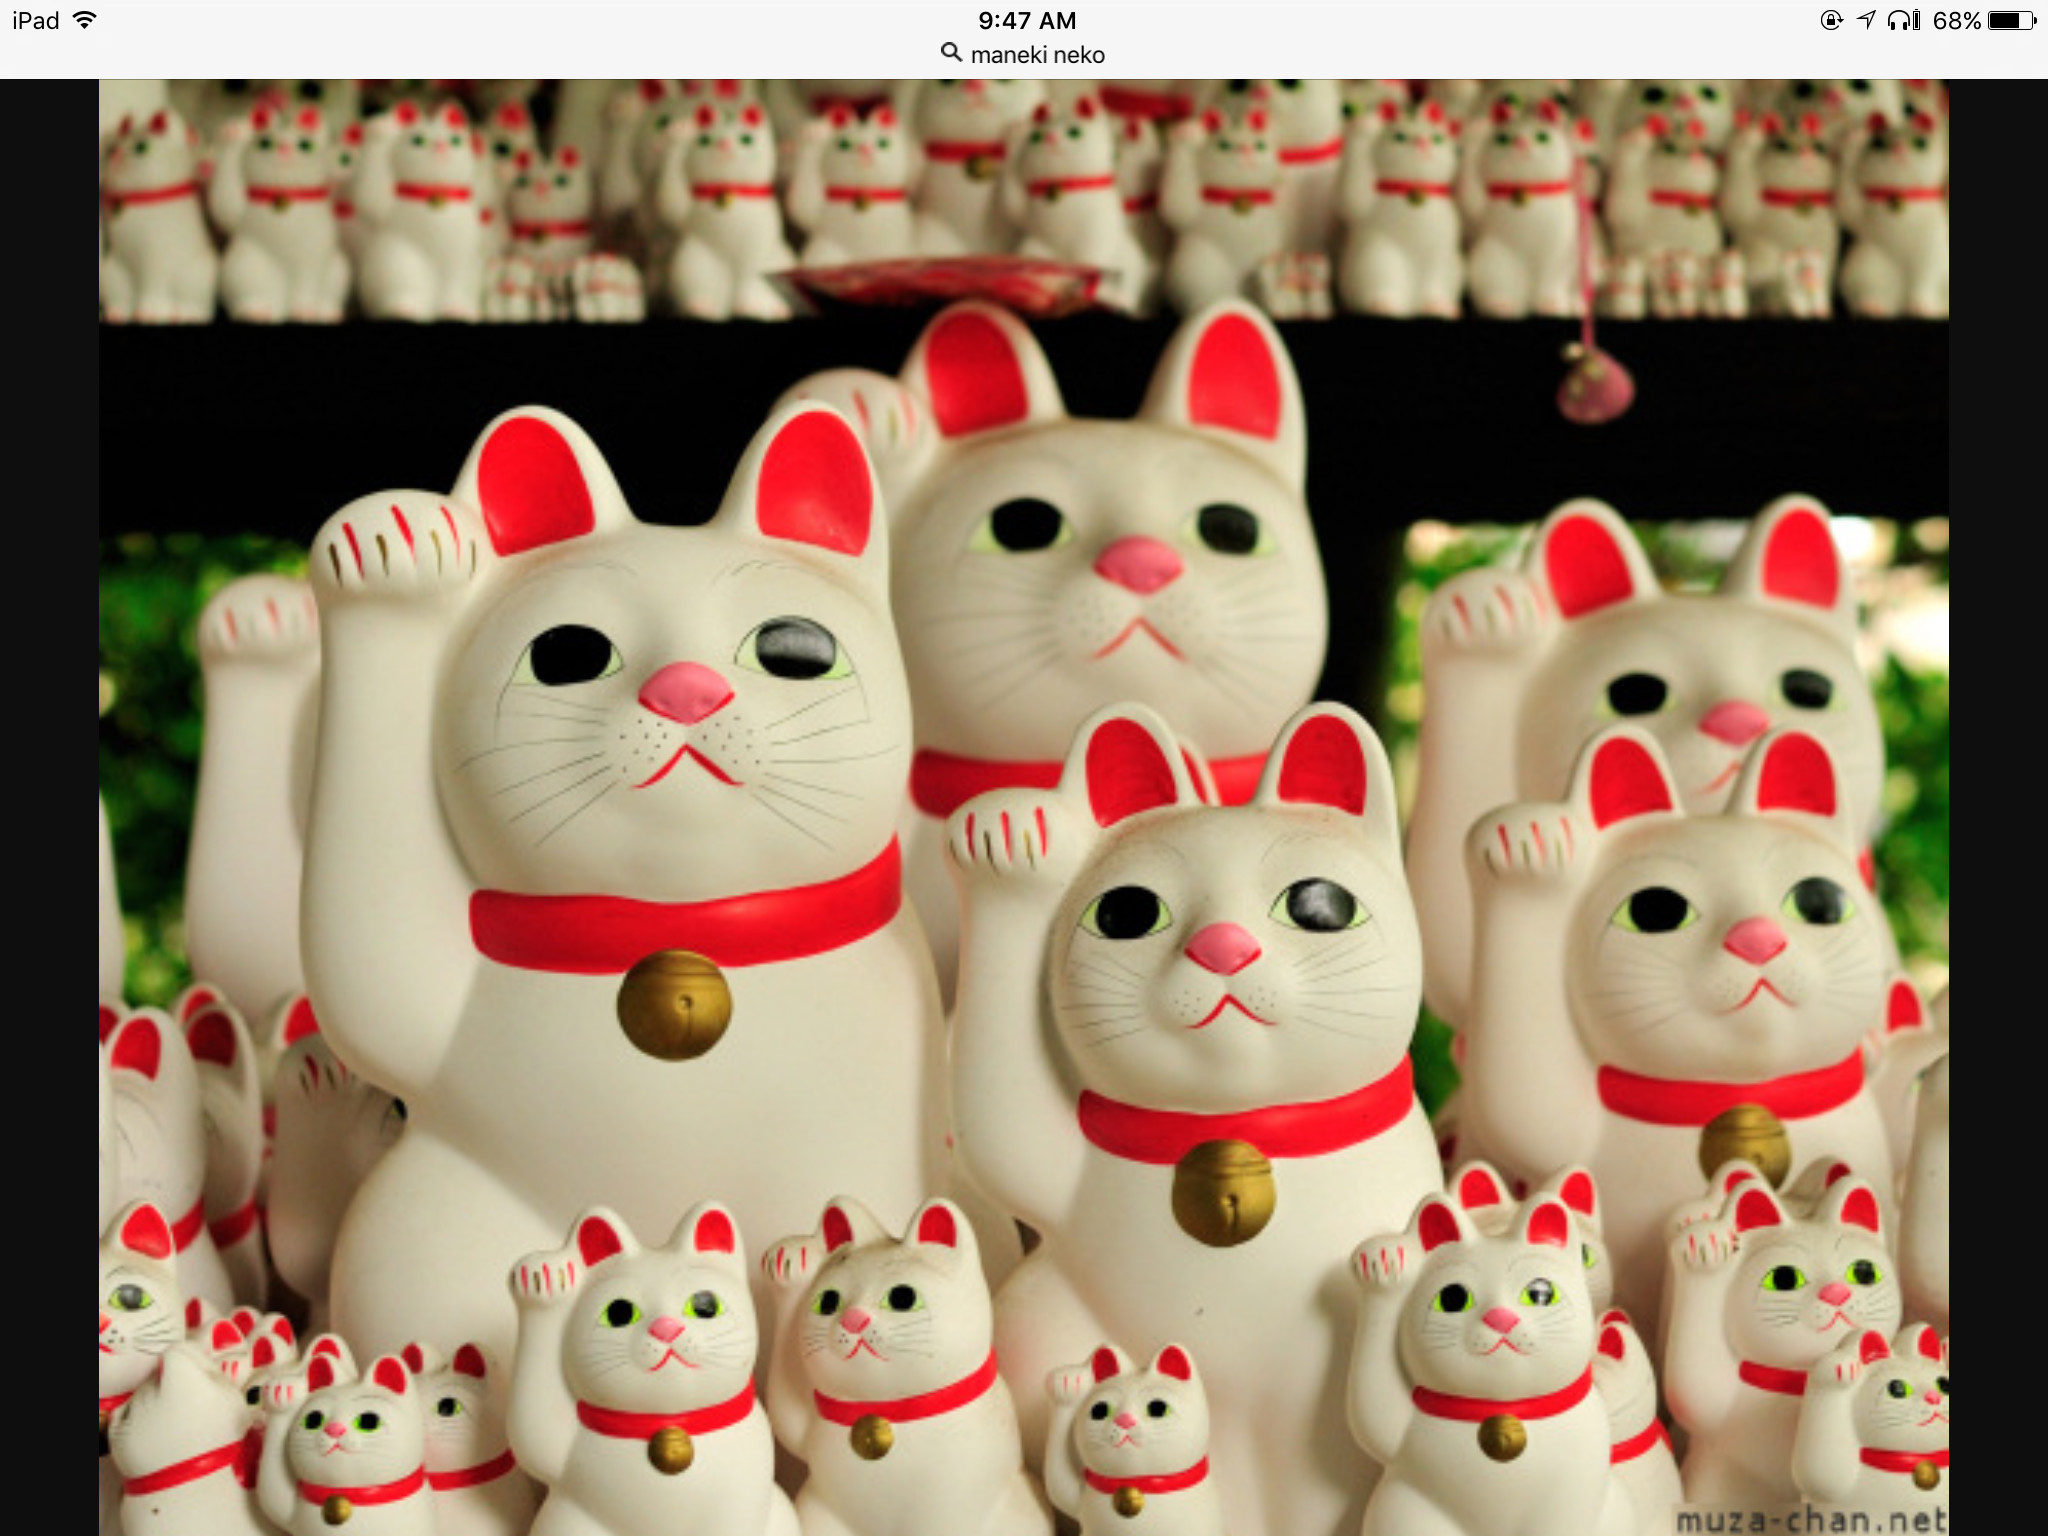 2048x1536 Maneki Neko, Cat 2, Here Kitty Kitty, Cat Crafts, Japanese Cat,